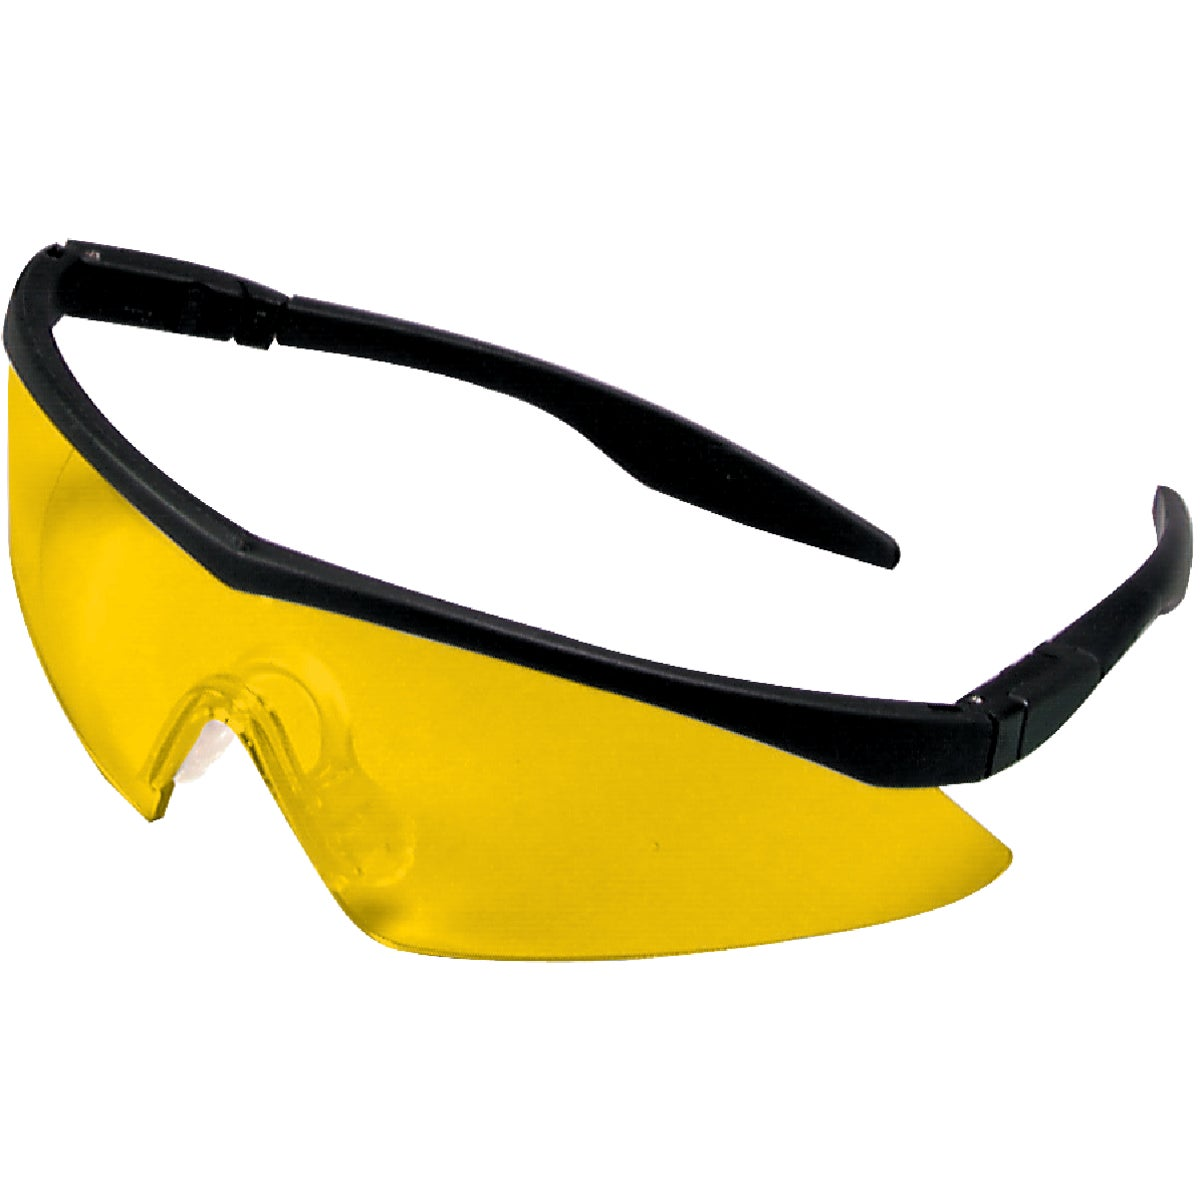 AMBER SAFETY GLASSES - 10021280 by Msa Safety